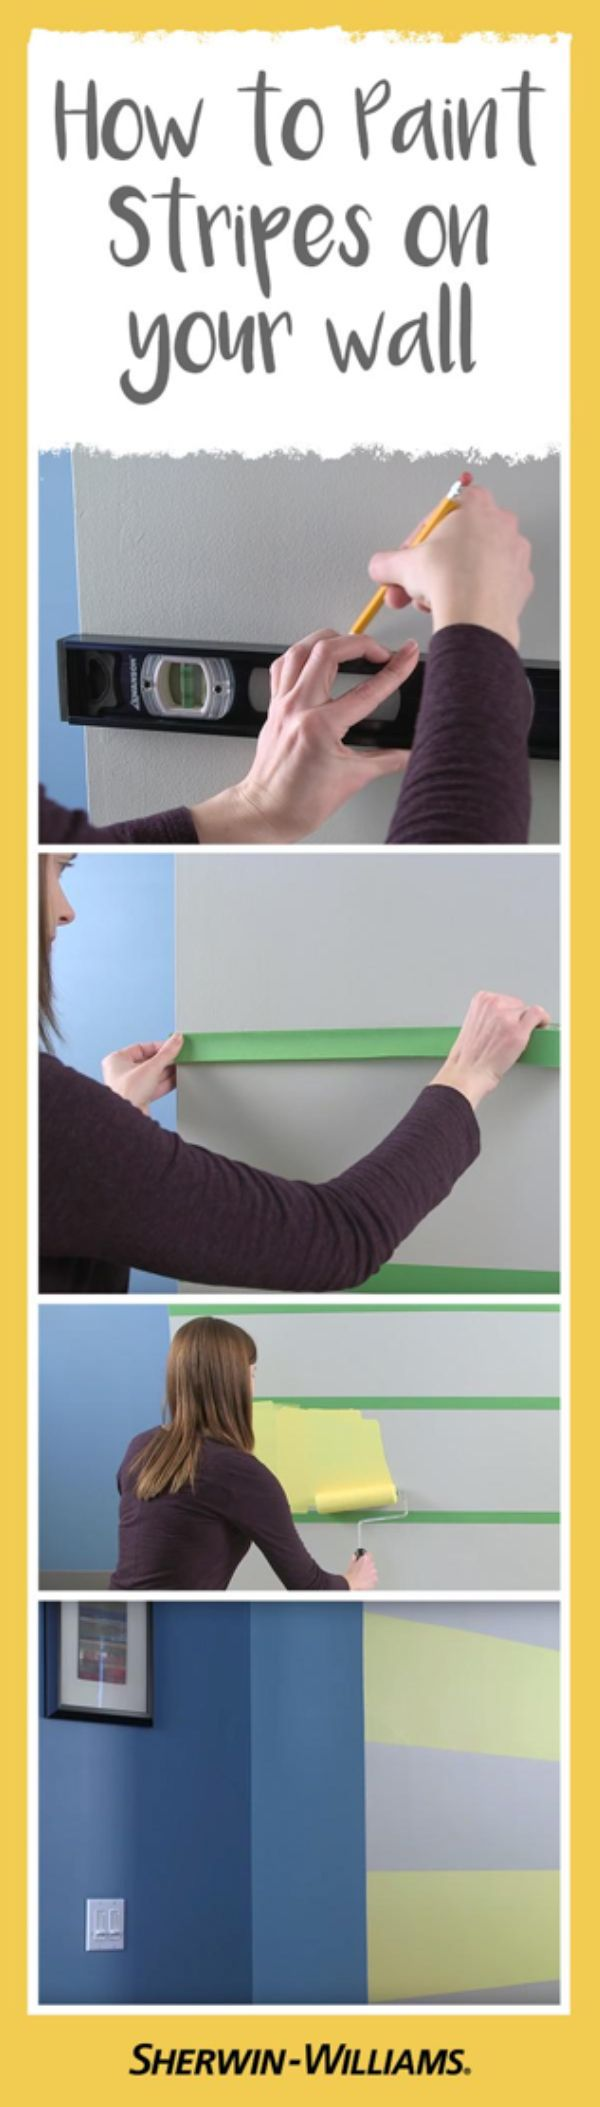 Painting stripes on your wall has never been easier: Just measure, tape and paint.